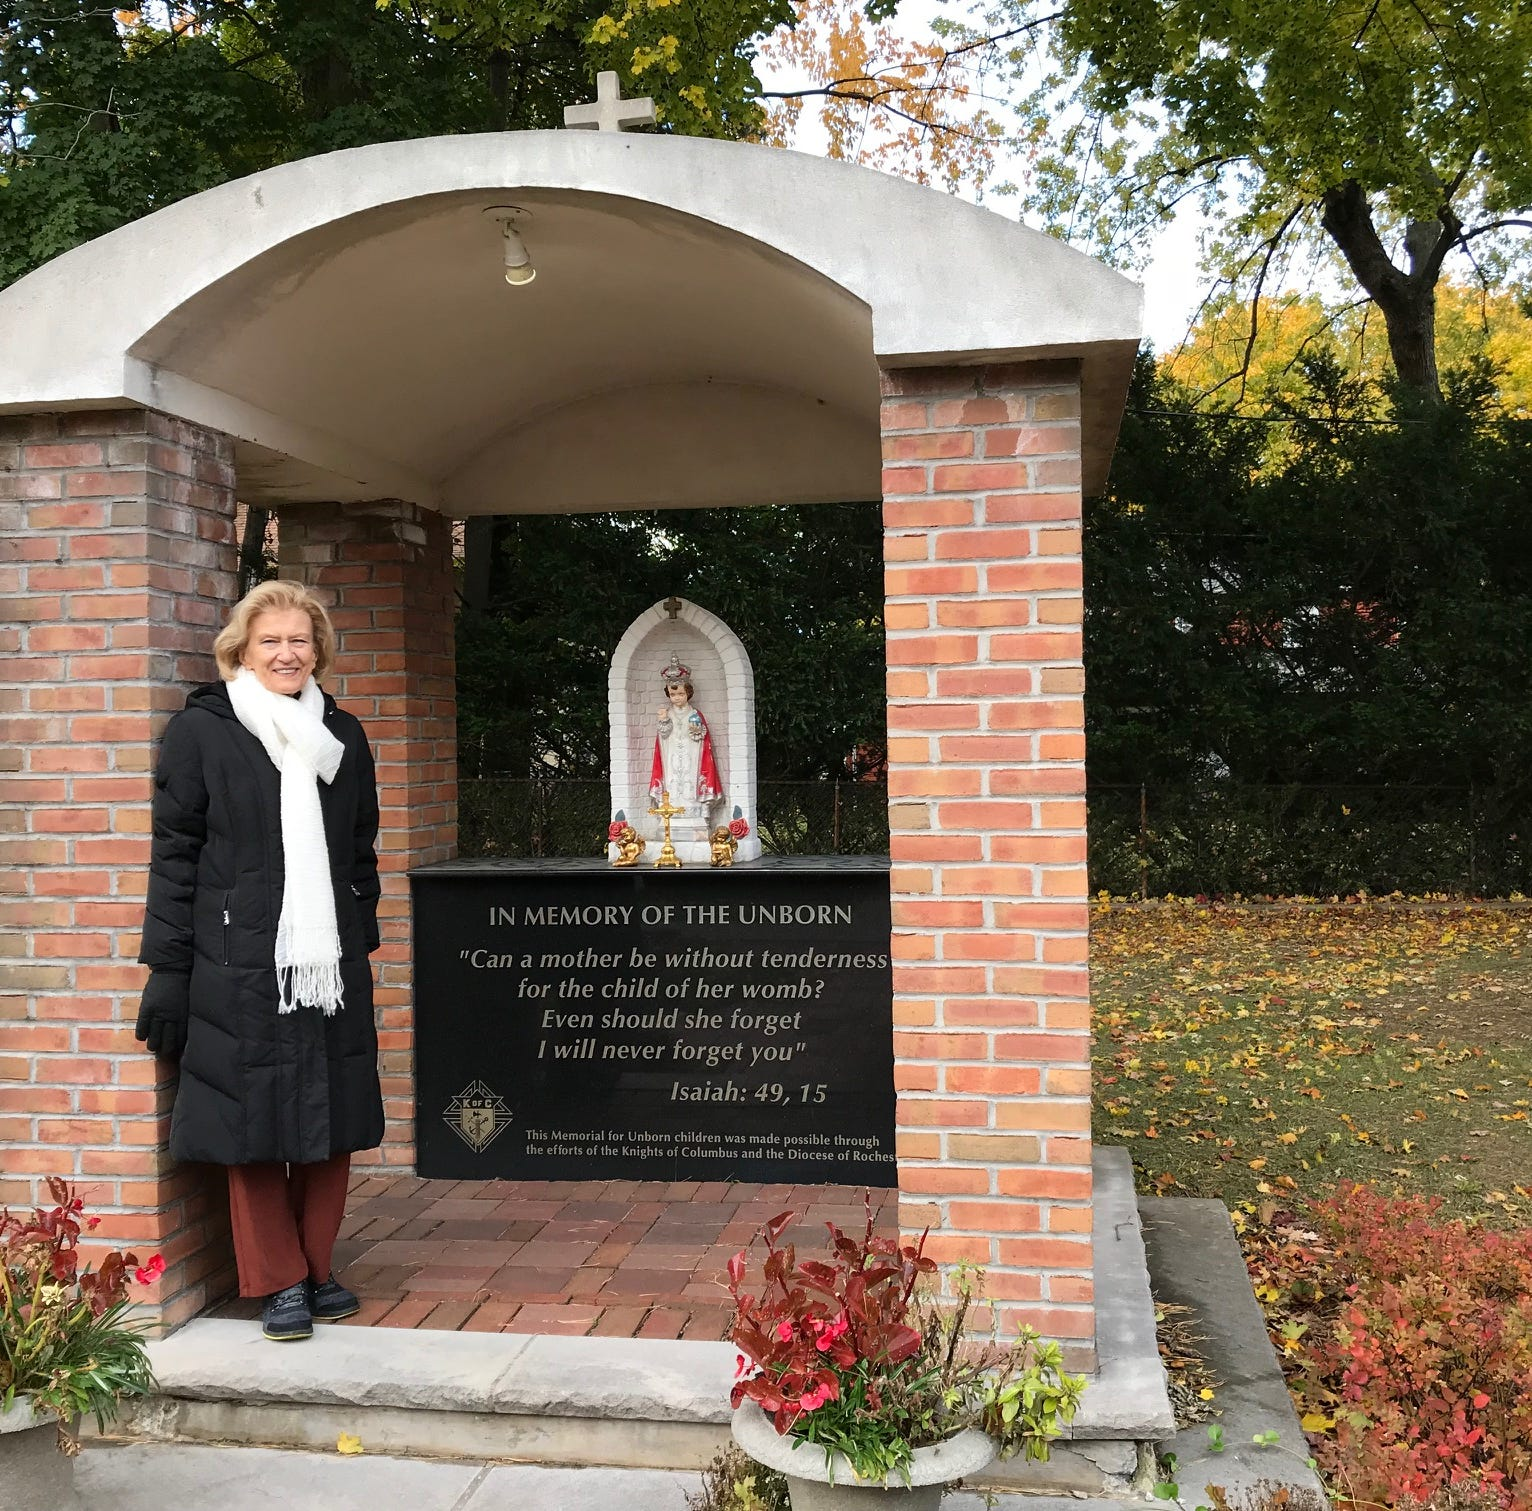 Andreatta: Pro-life monument at polling site rankles voter